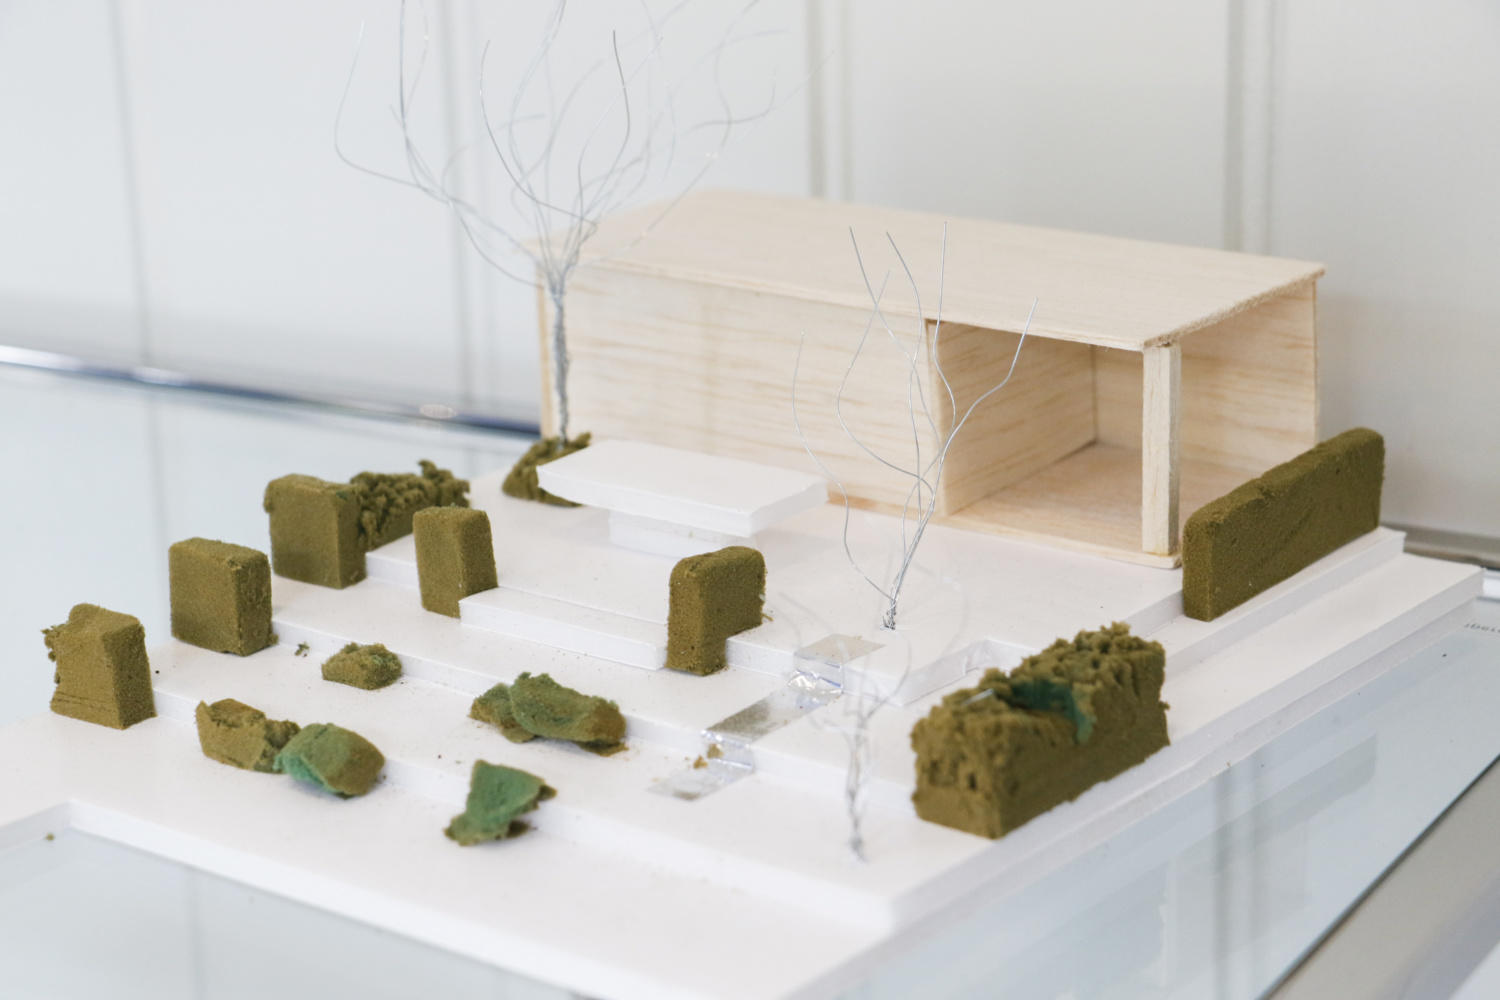 Close up of a model made out of wood, paper, wire and polystyrene on a garden design